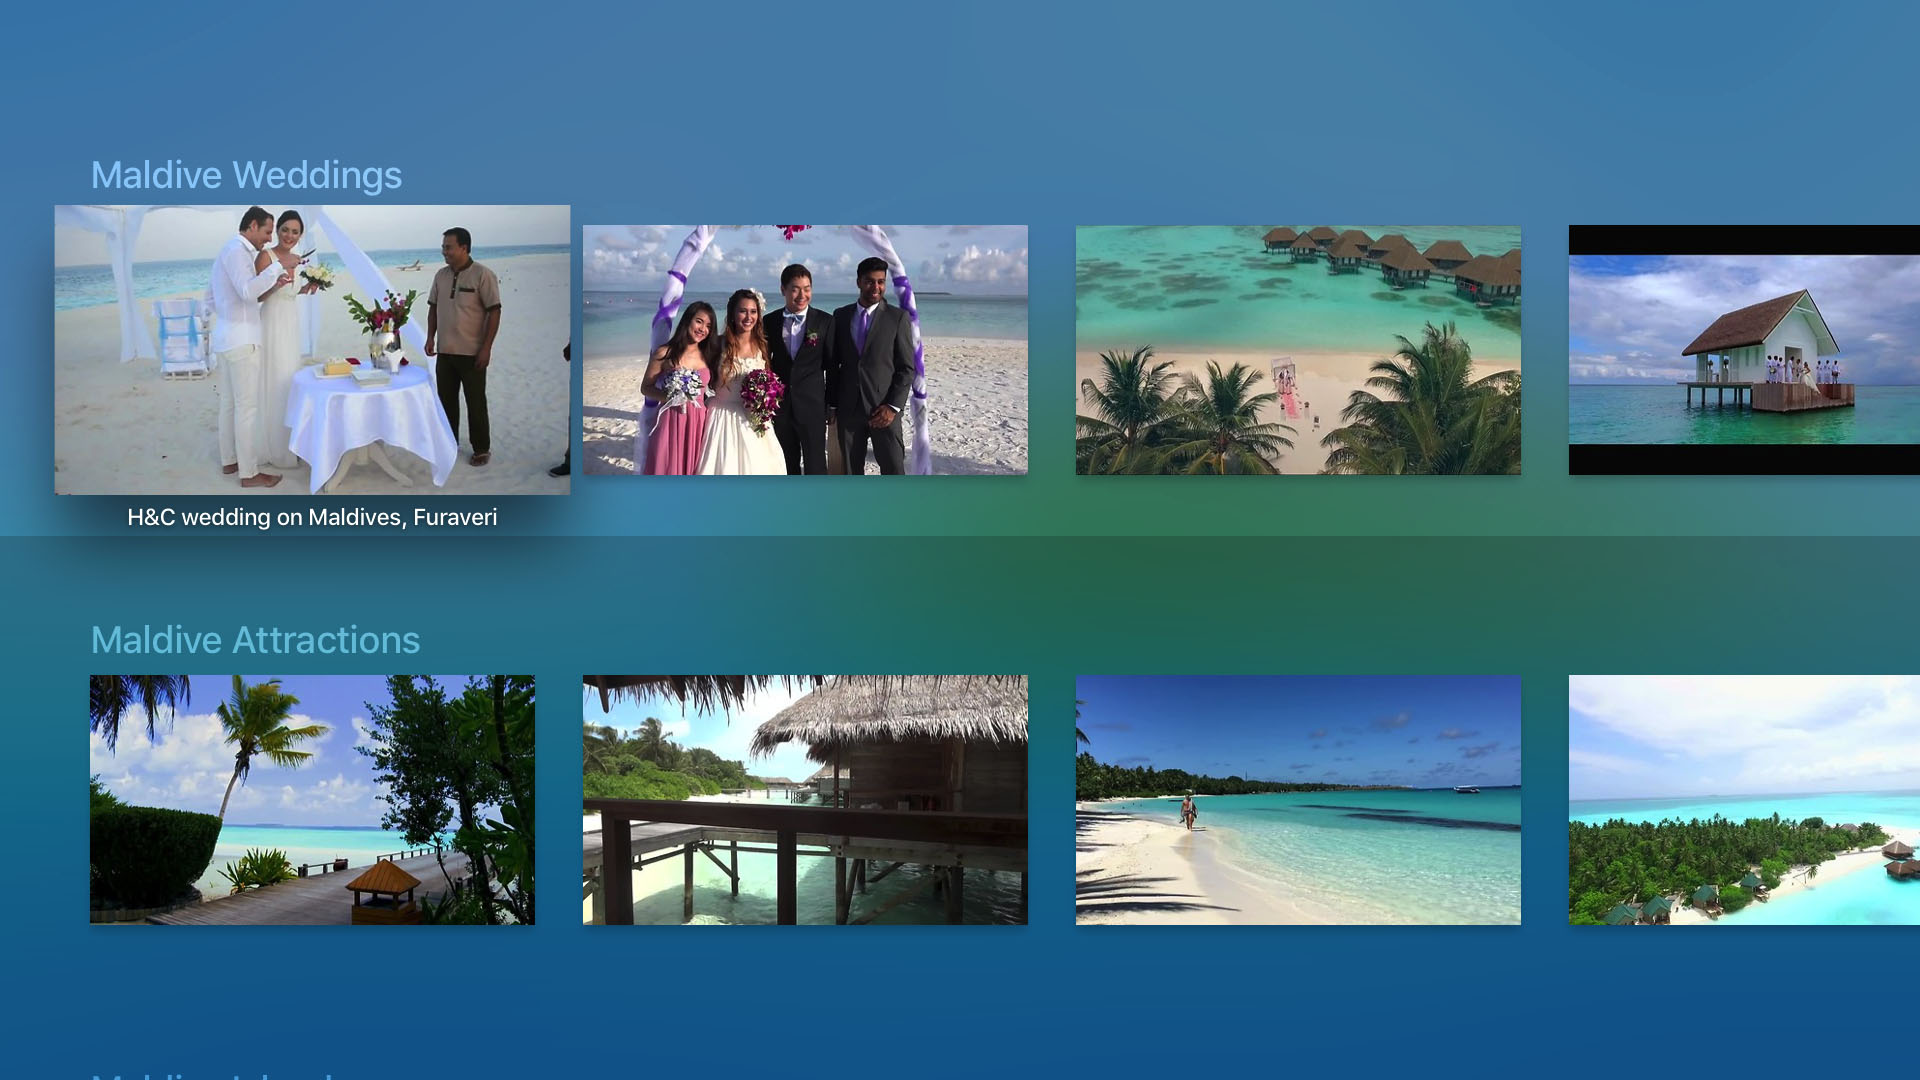 The Maldives Channel Screenshot 002